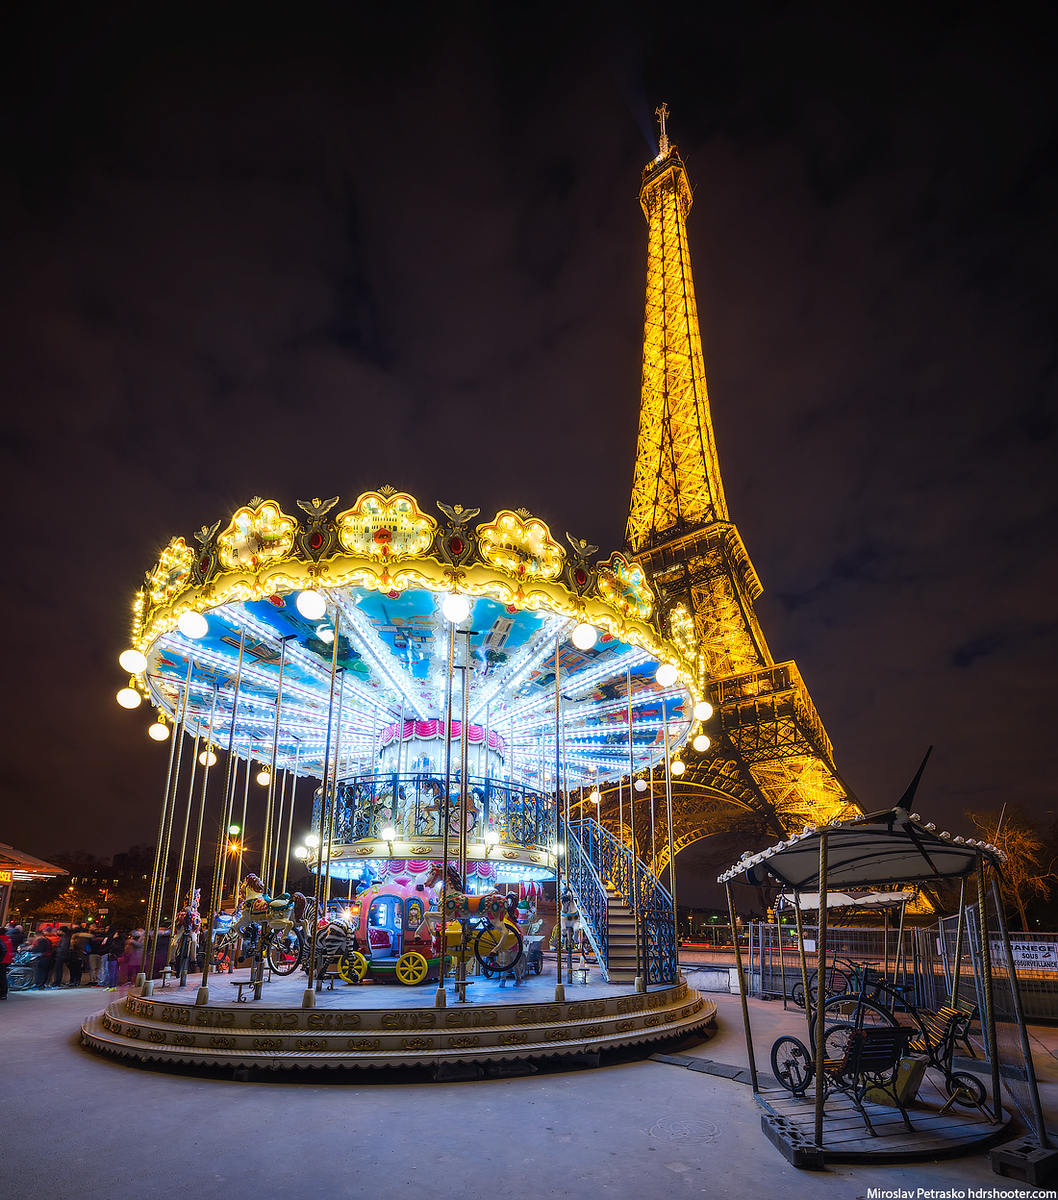 Carousel under the Eiffel tower, Paris, France